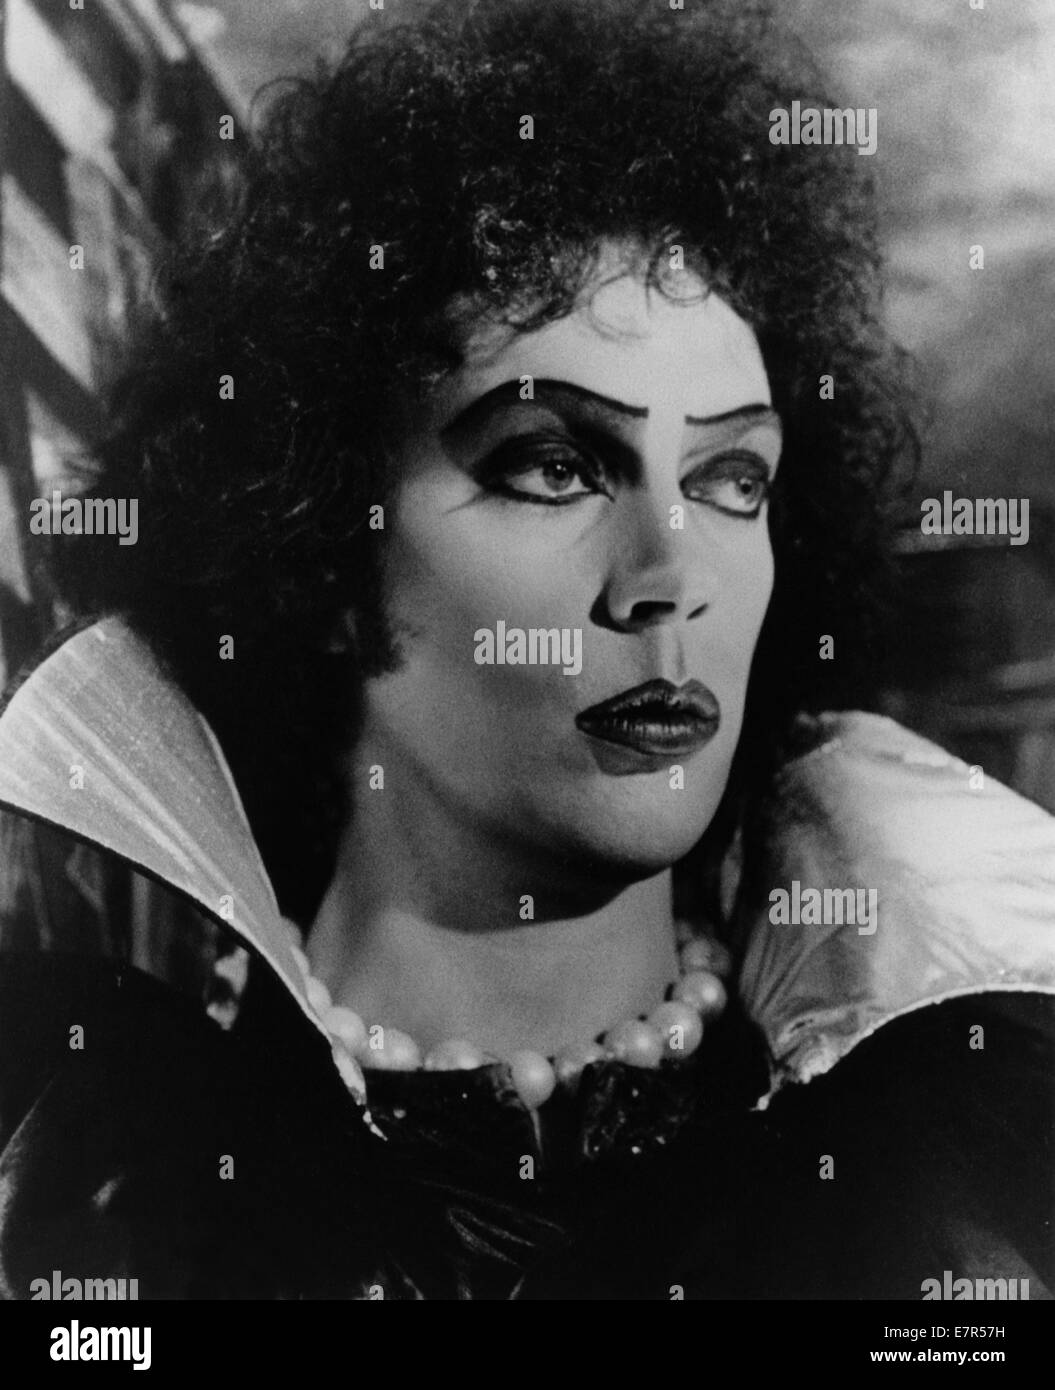 rocky horror picture show stock photos  u0026 rocky horror